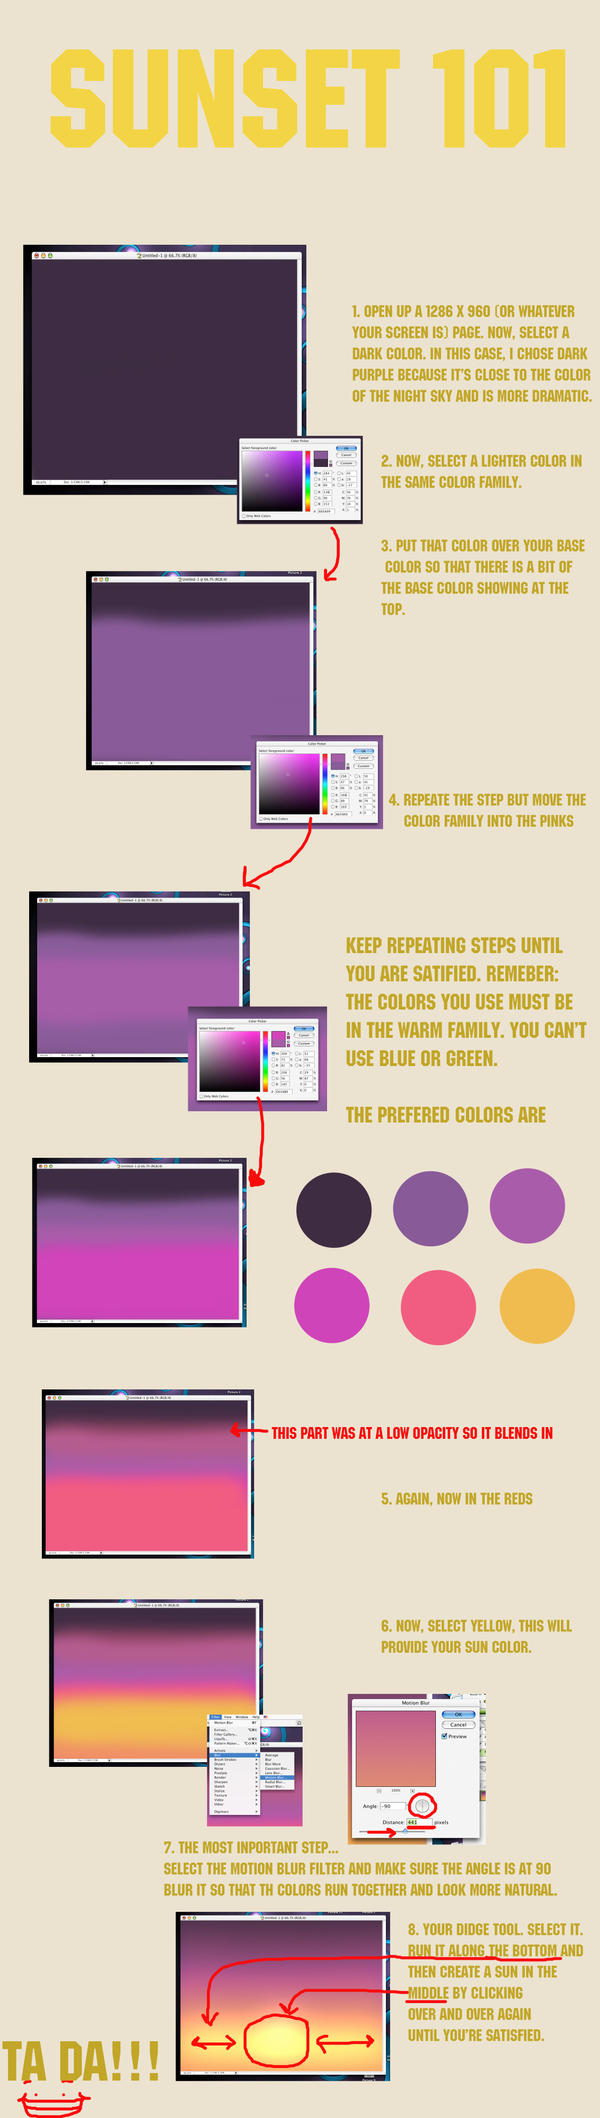 Sunset Tutorial 101 by WisdomsPearl